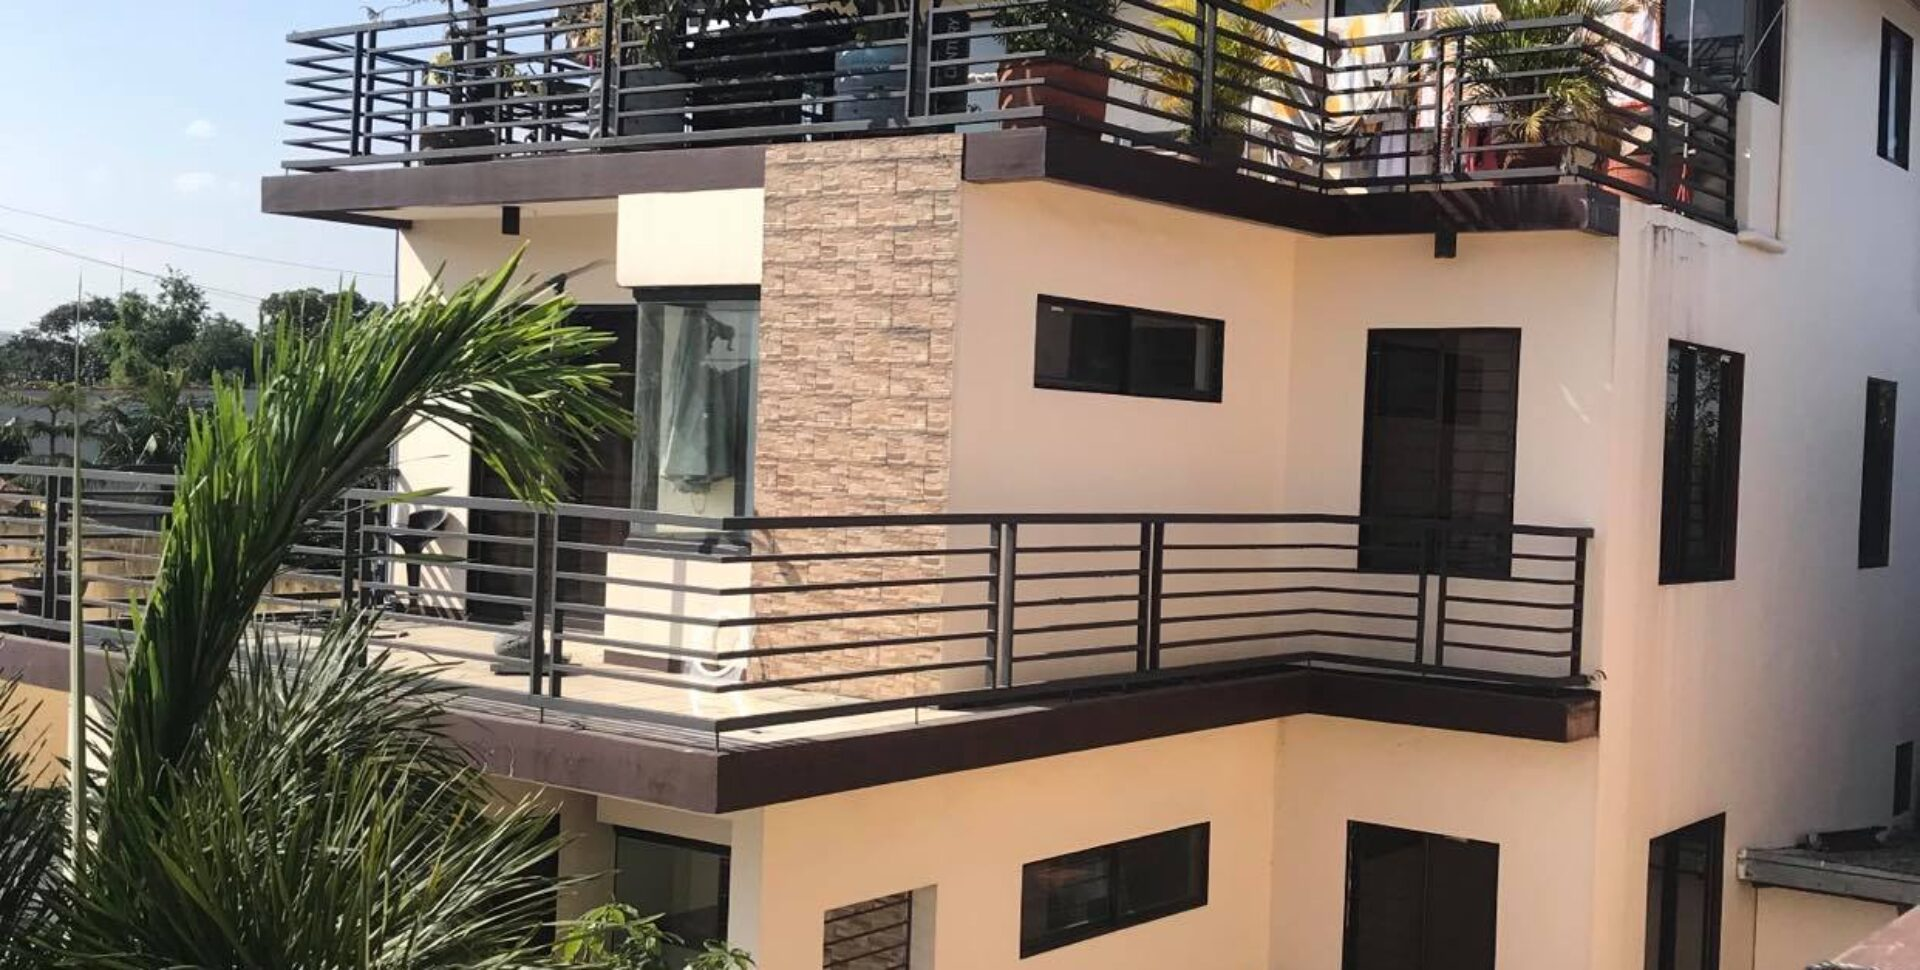 6BR house and lot in Project 8 Quezon City